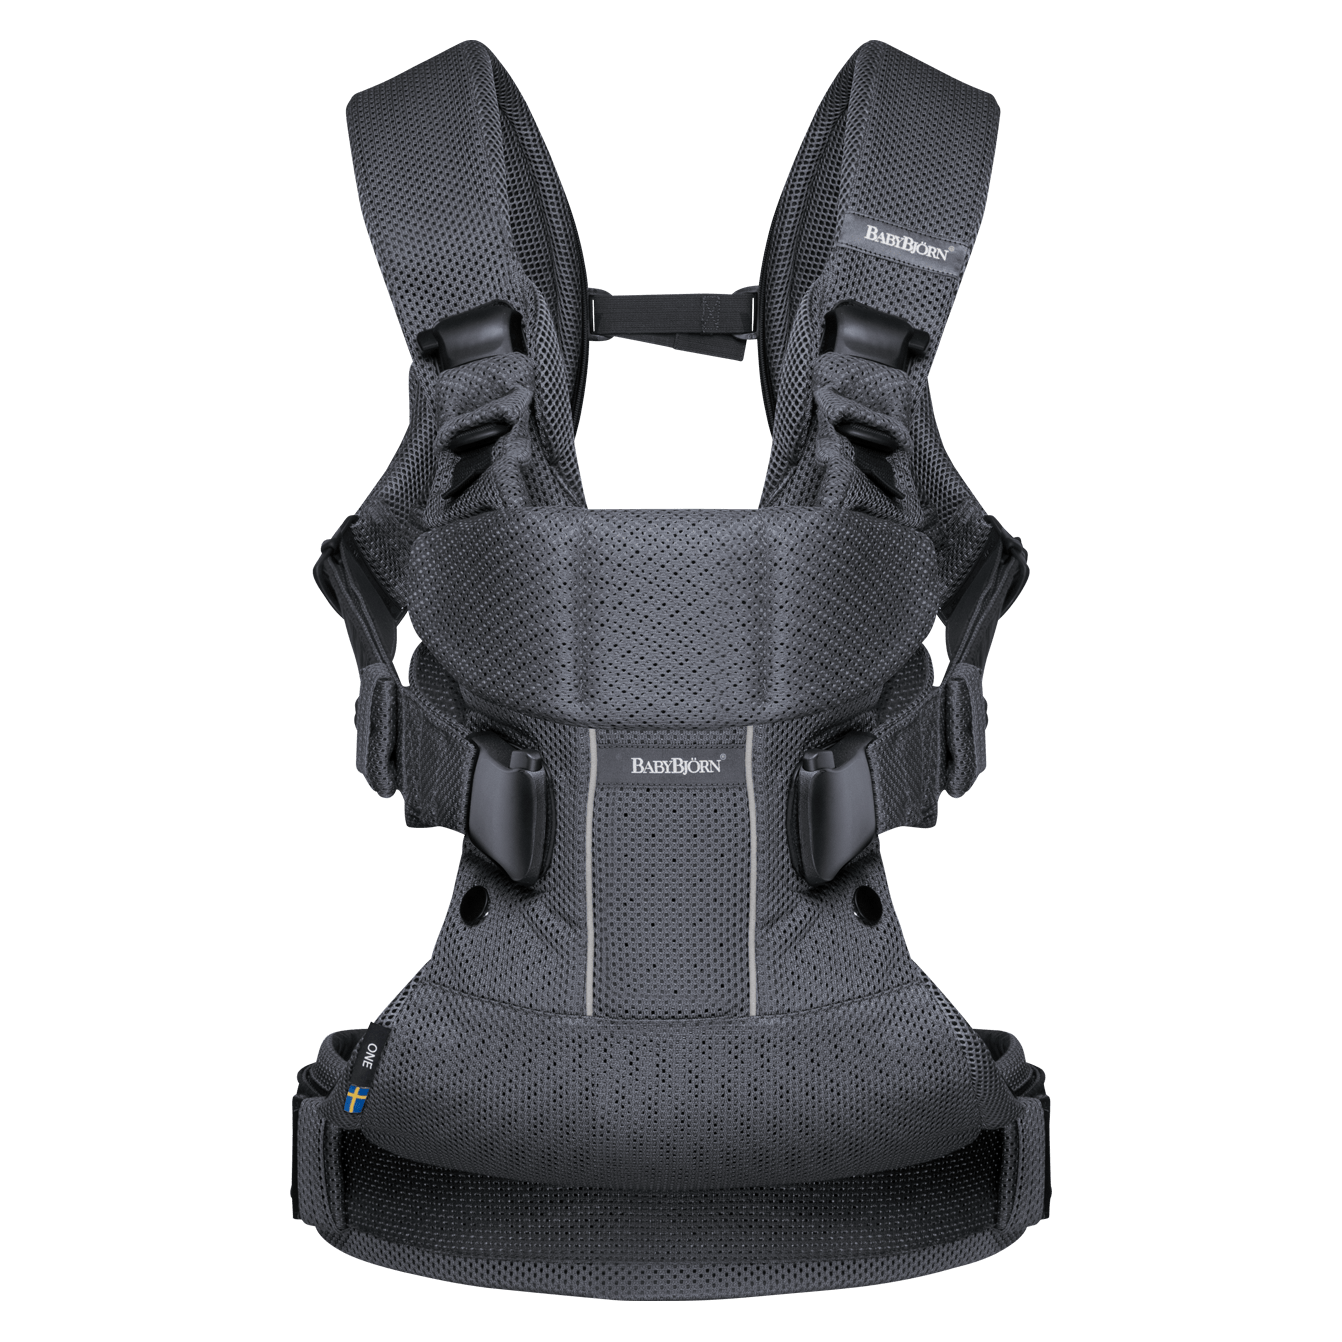 BABYBJÖRN Baby Carrier One Air in anthracite mesh, an ergonomic baby carrier perfect for newborn up to 3 years.